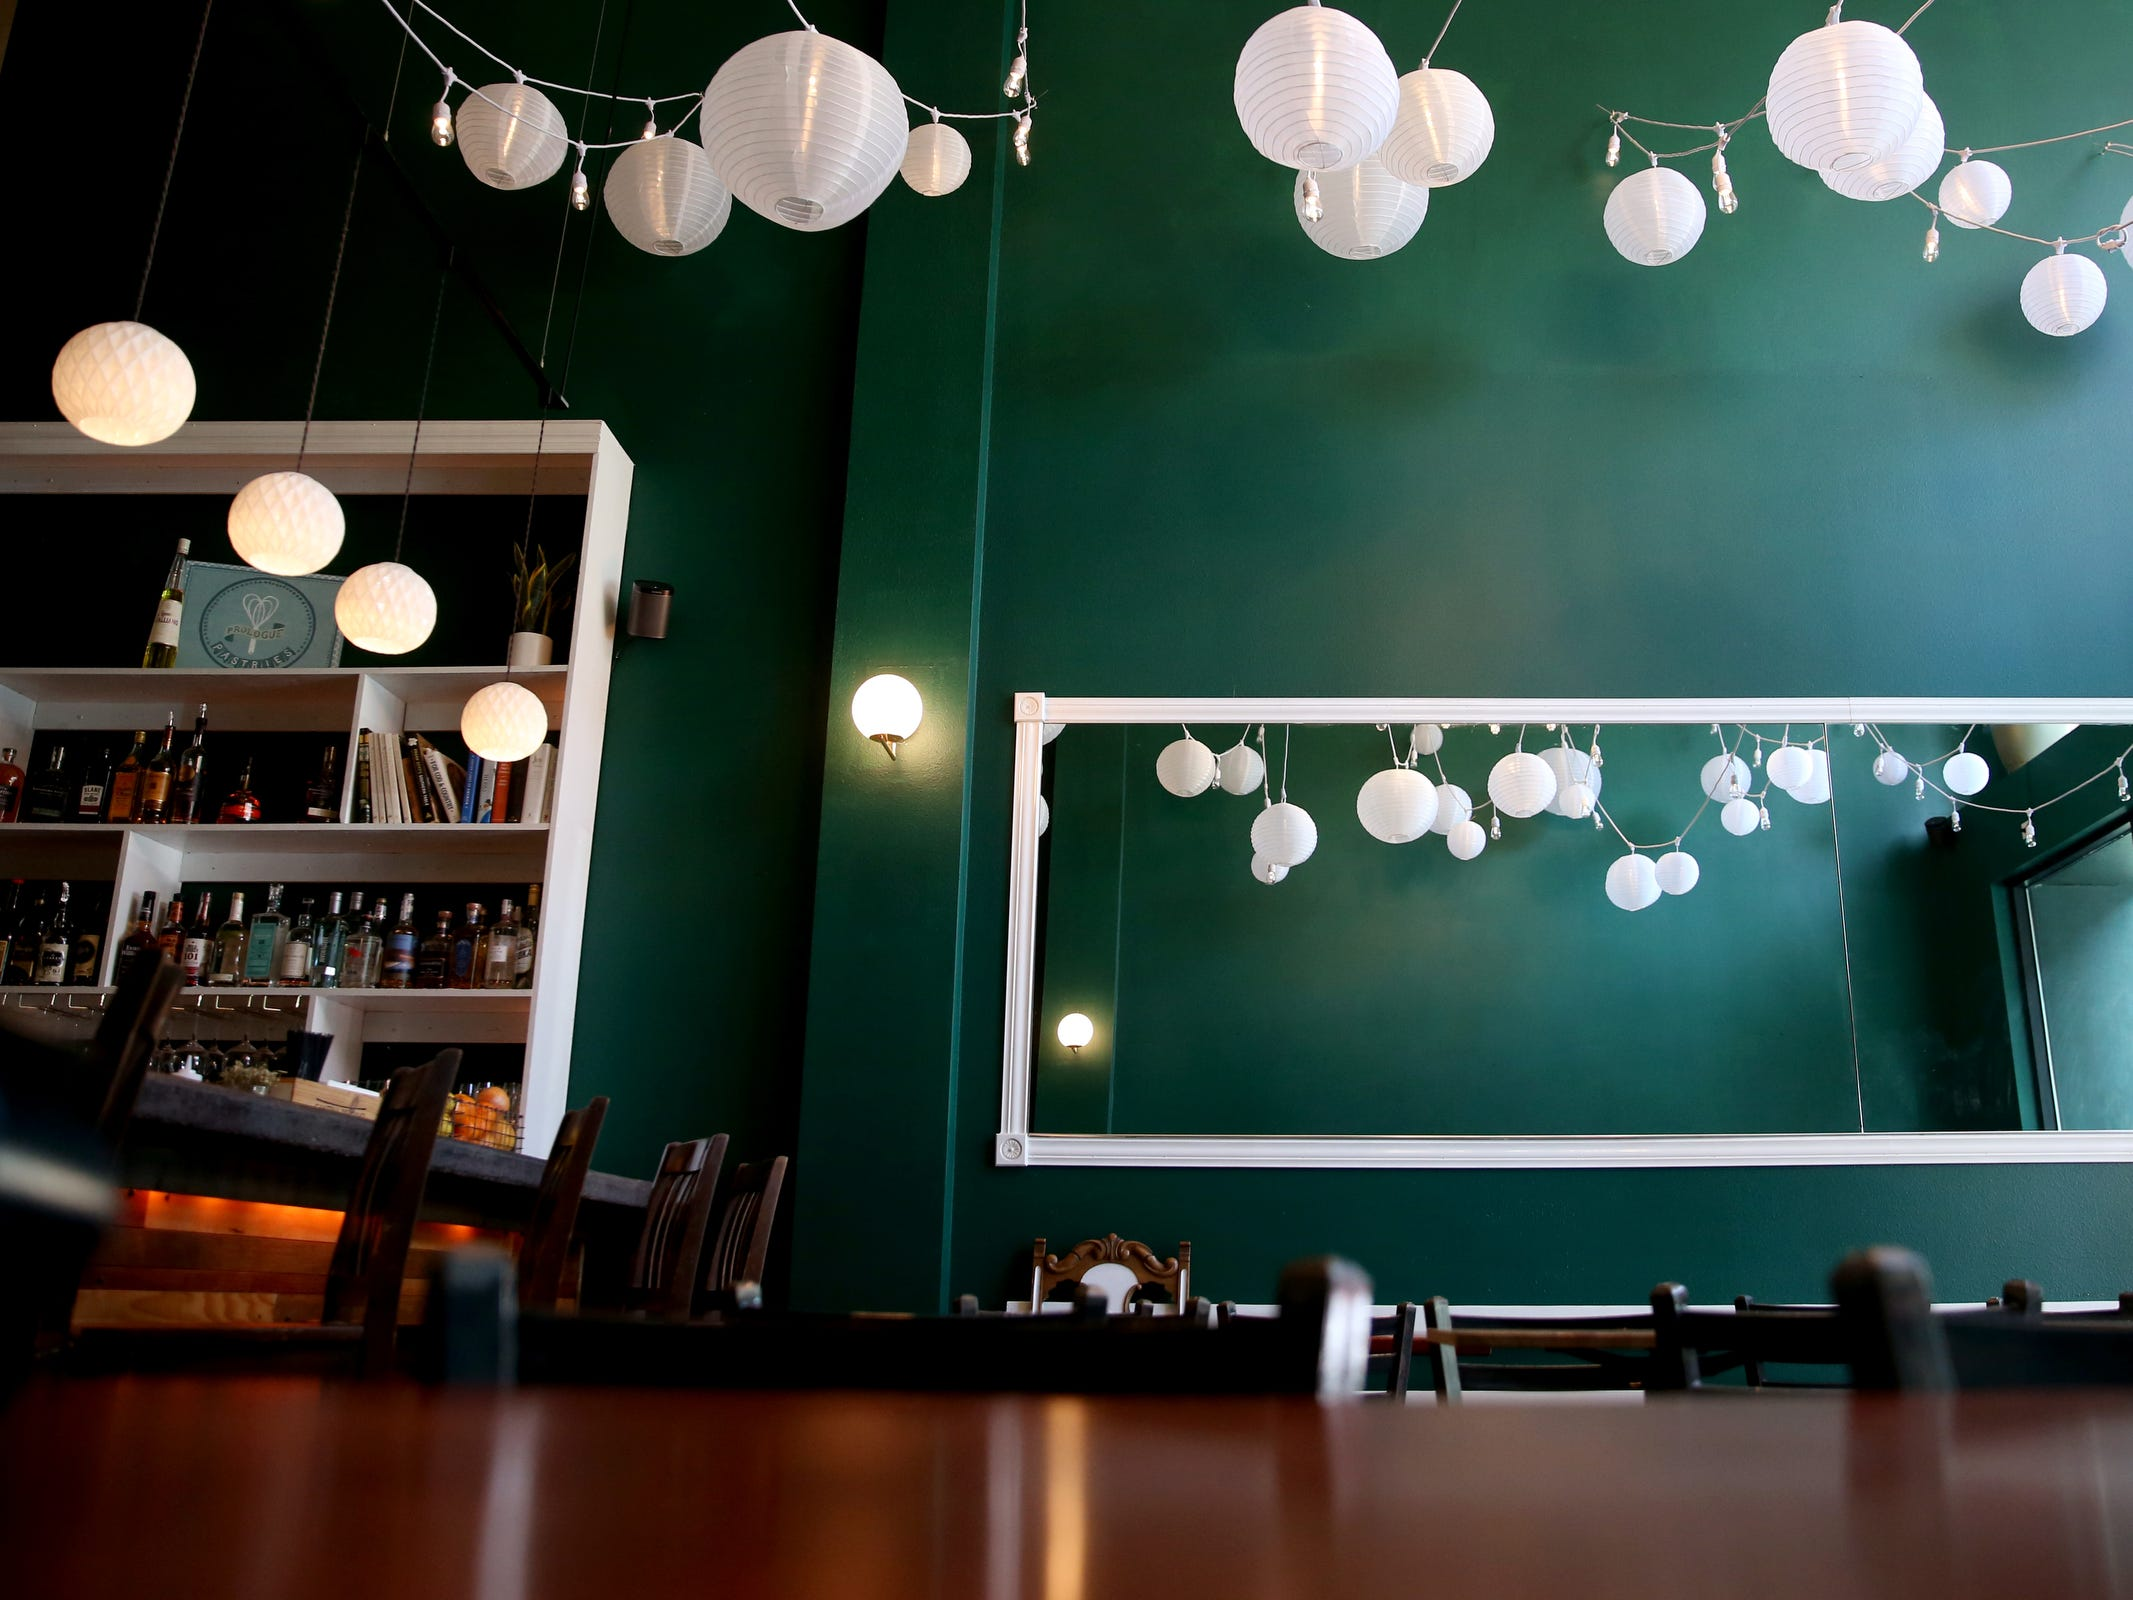 Epilogue Kitchen & Cocktails in Salem on March 20, 2019. The restaurant opens in downtown Salem on Friday.